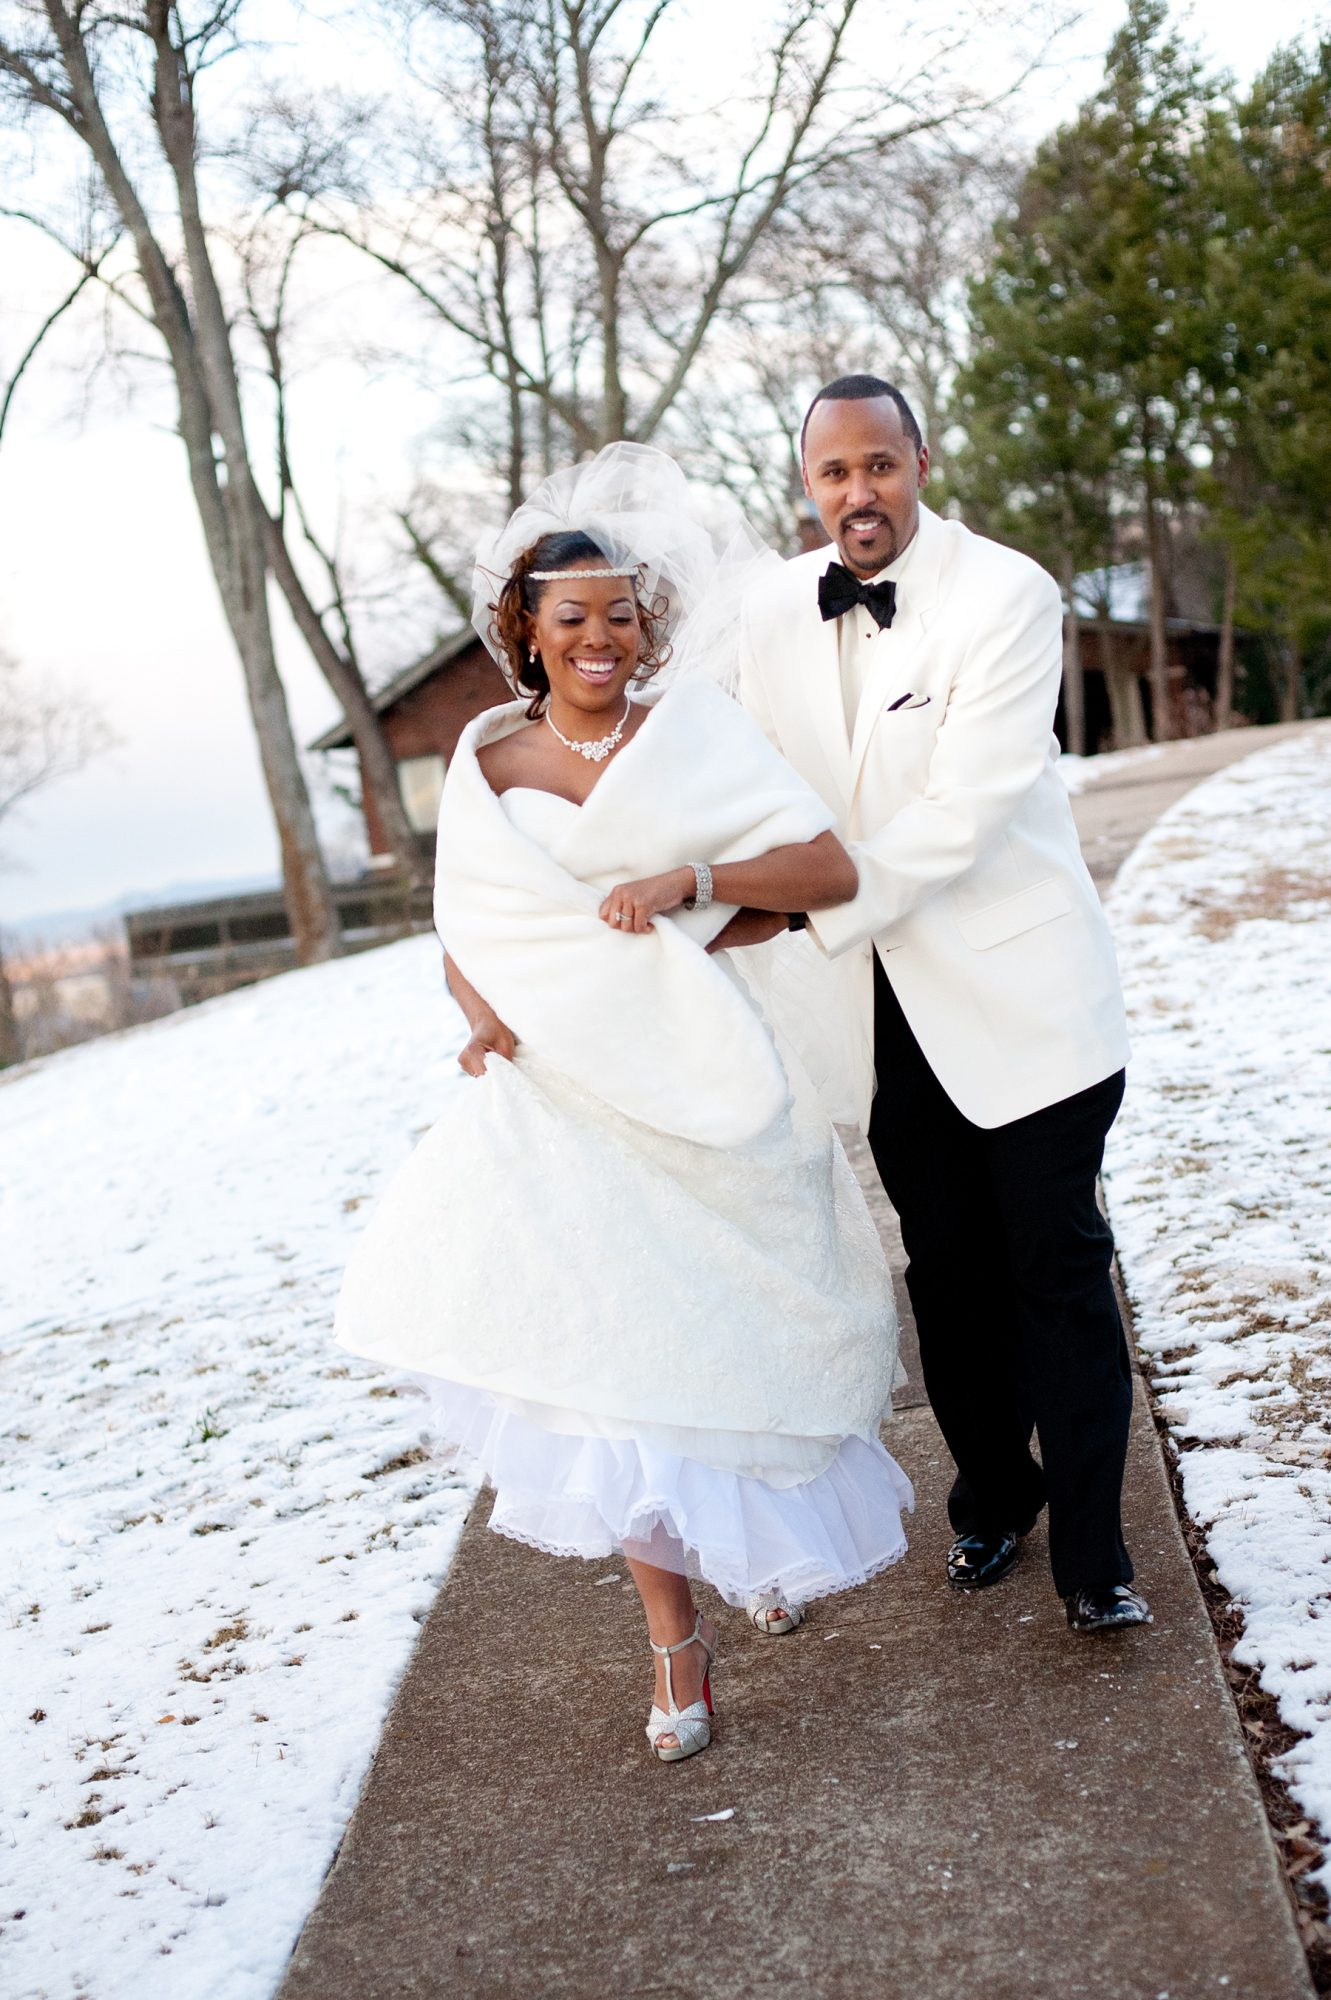 Bride and Groom Running in Snow